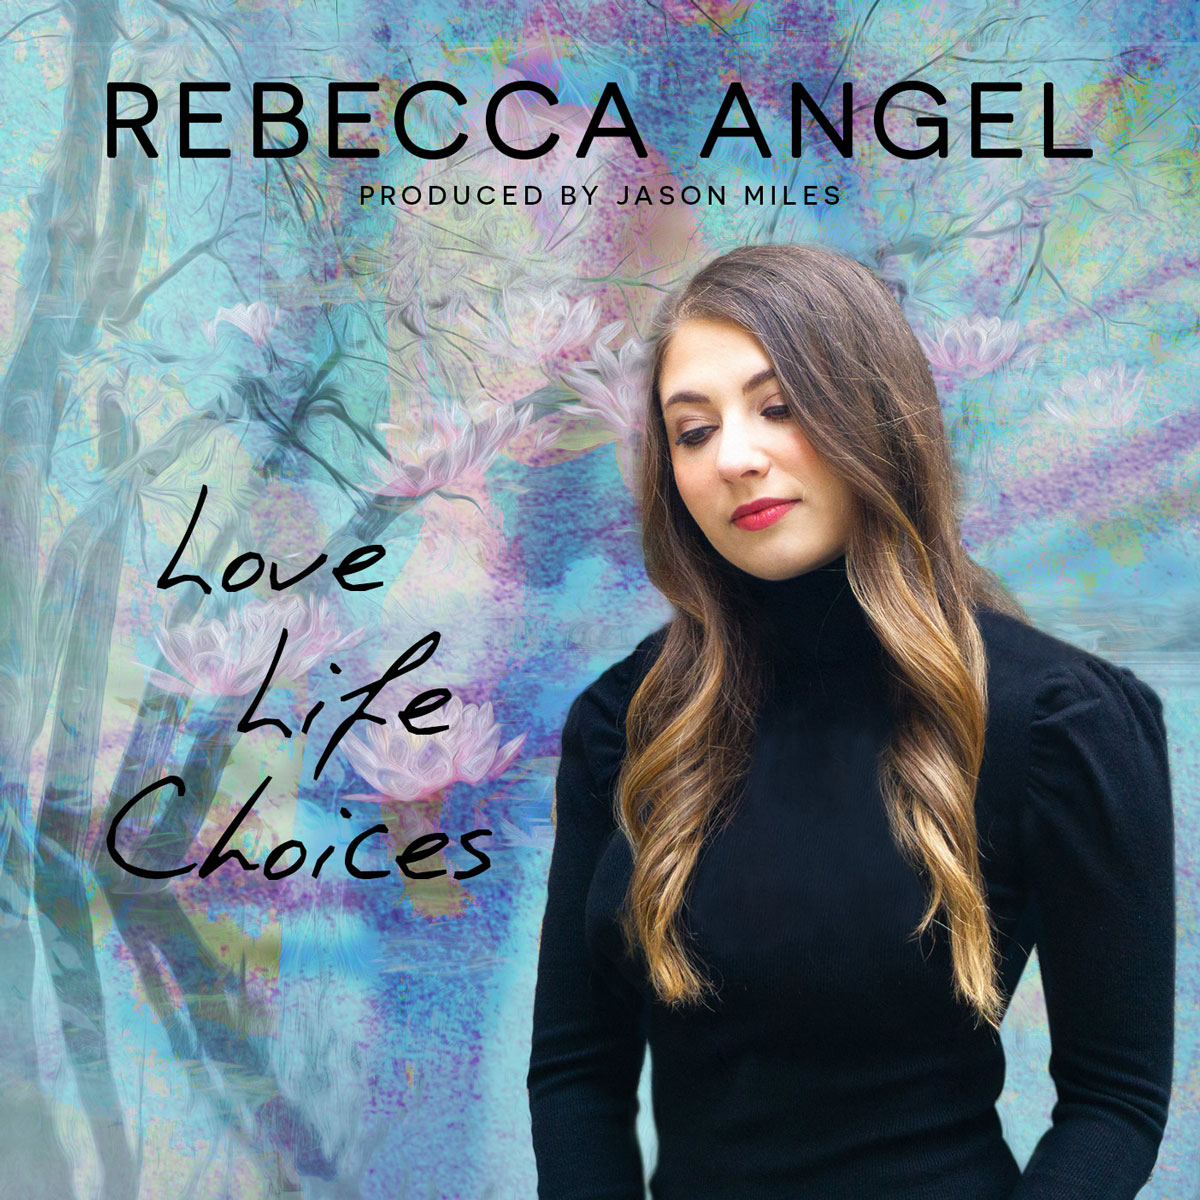 Rebecca Angel - Love, Life, Choices Out Now!